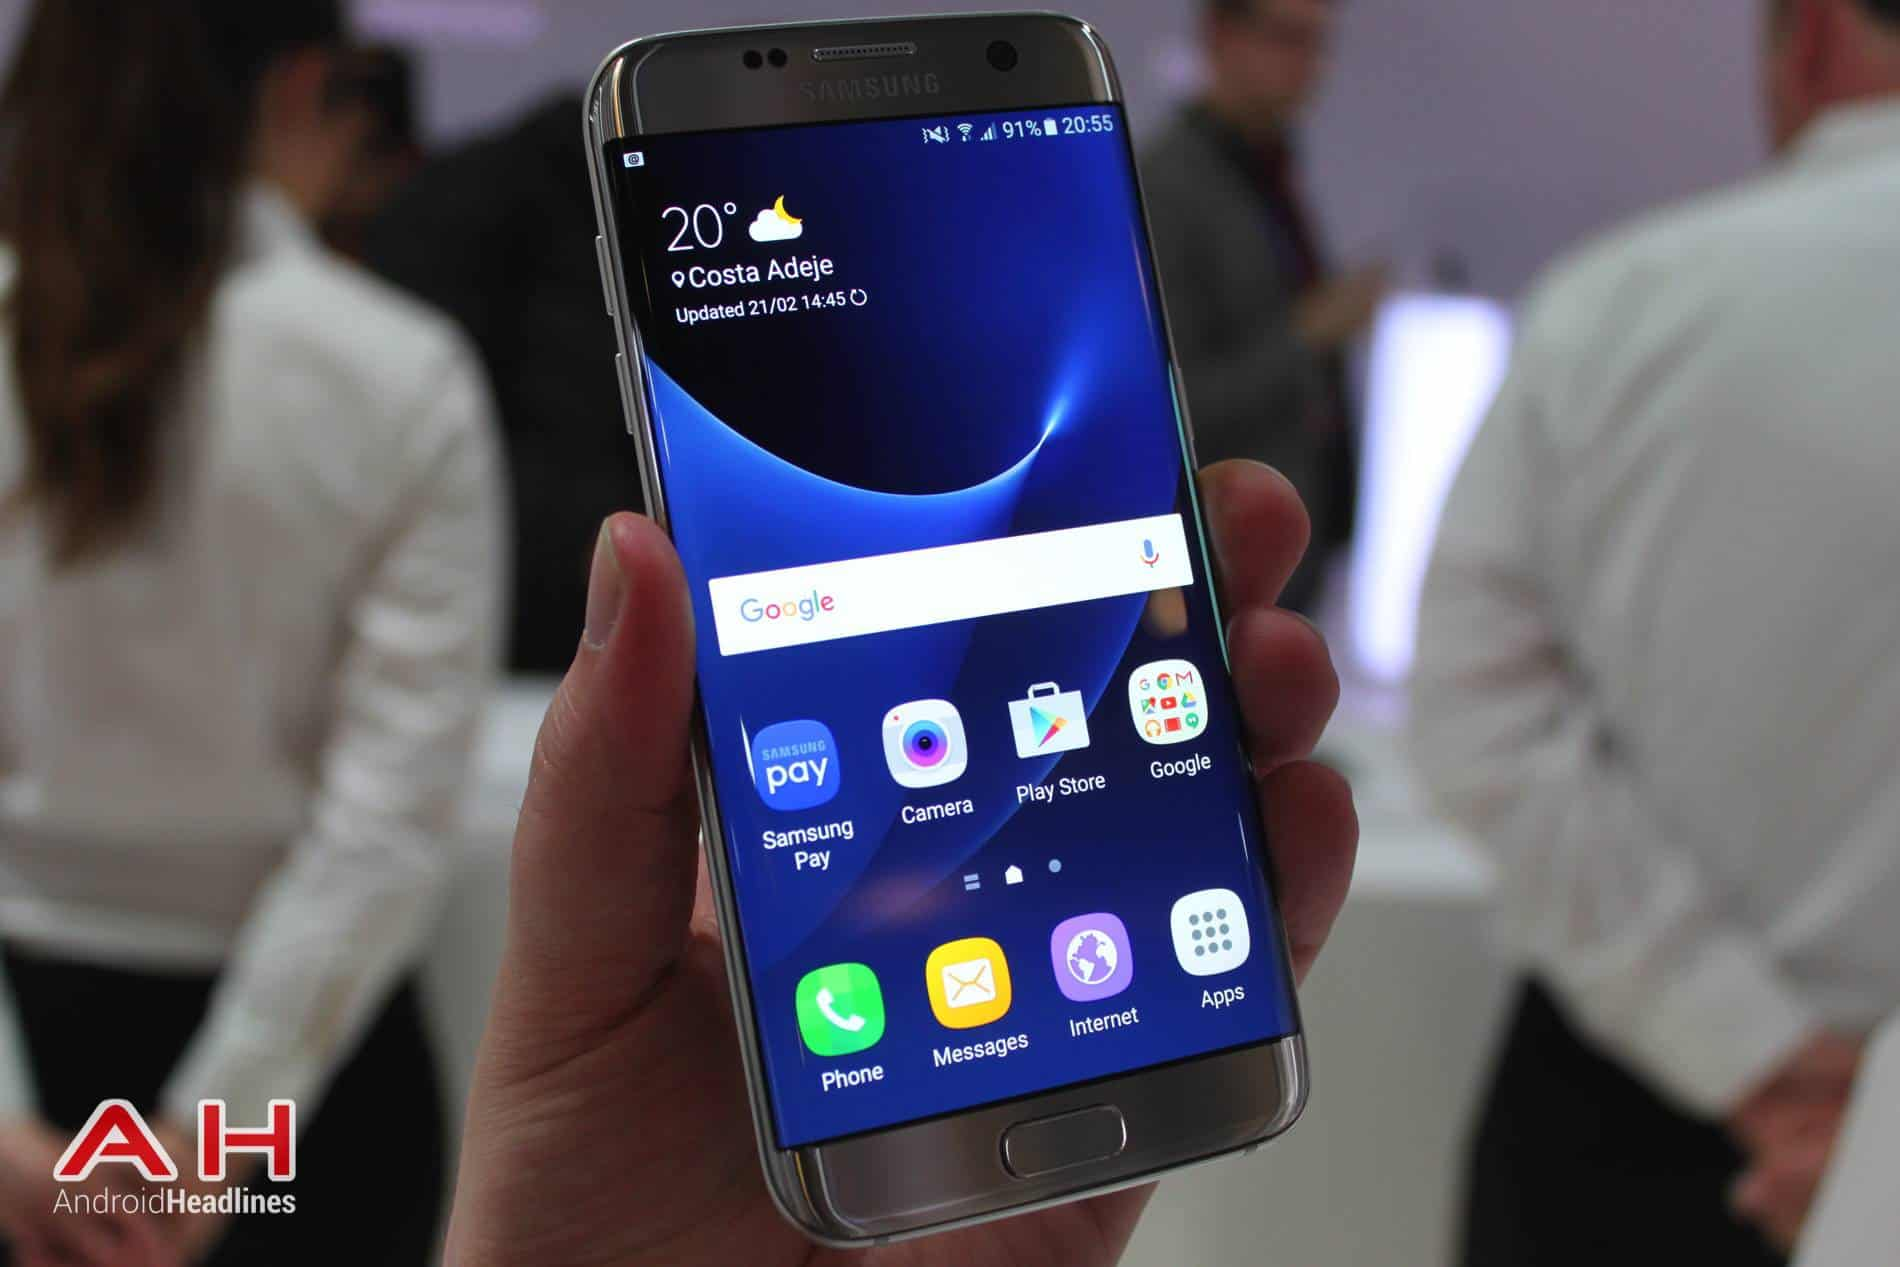 Galaxy S7 Edge MWC AH 31